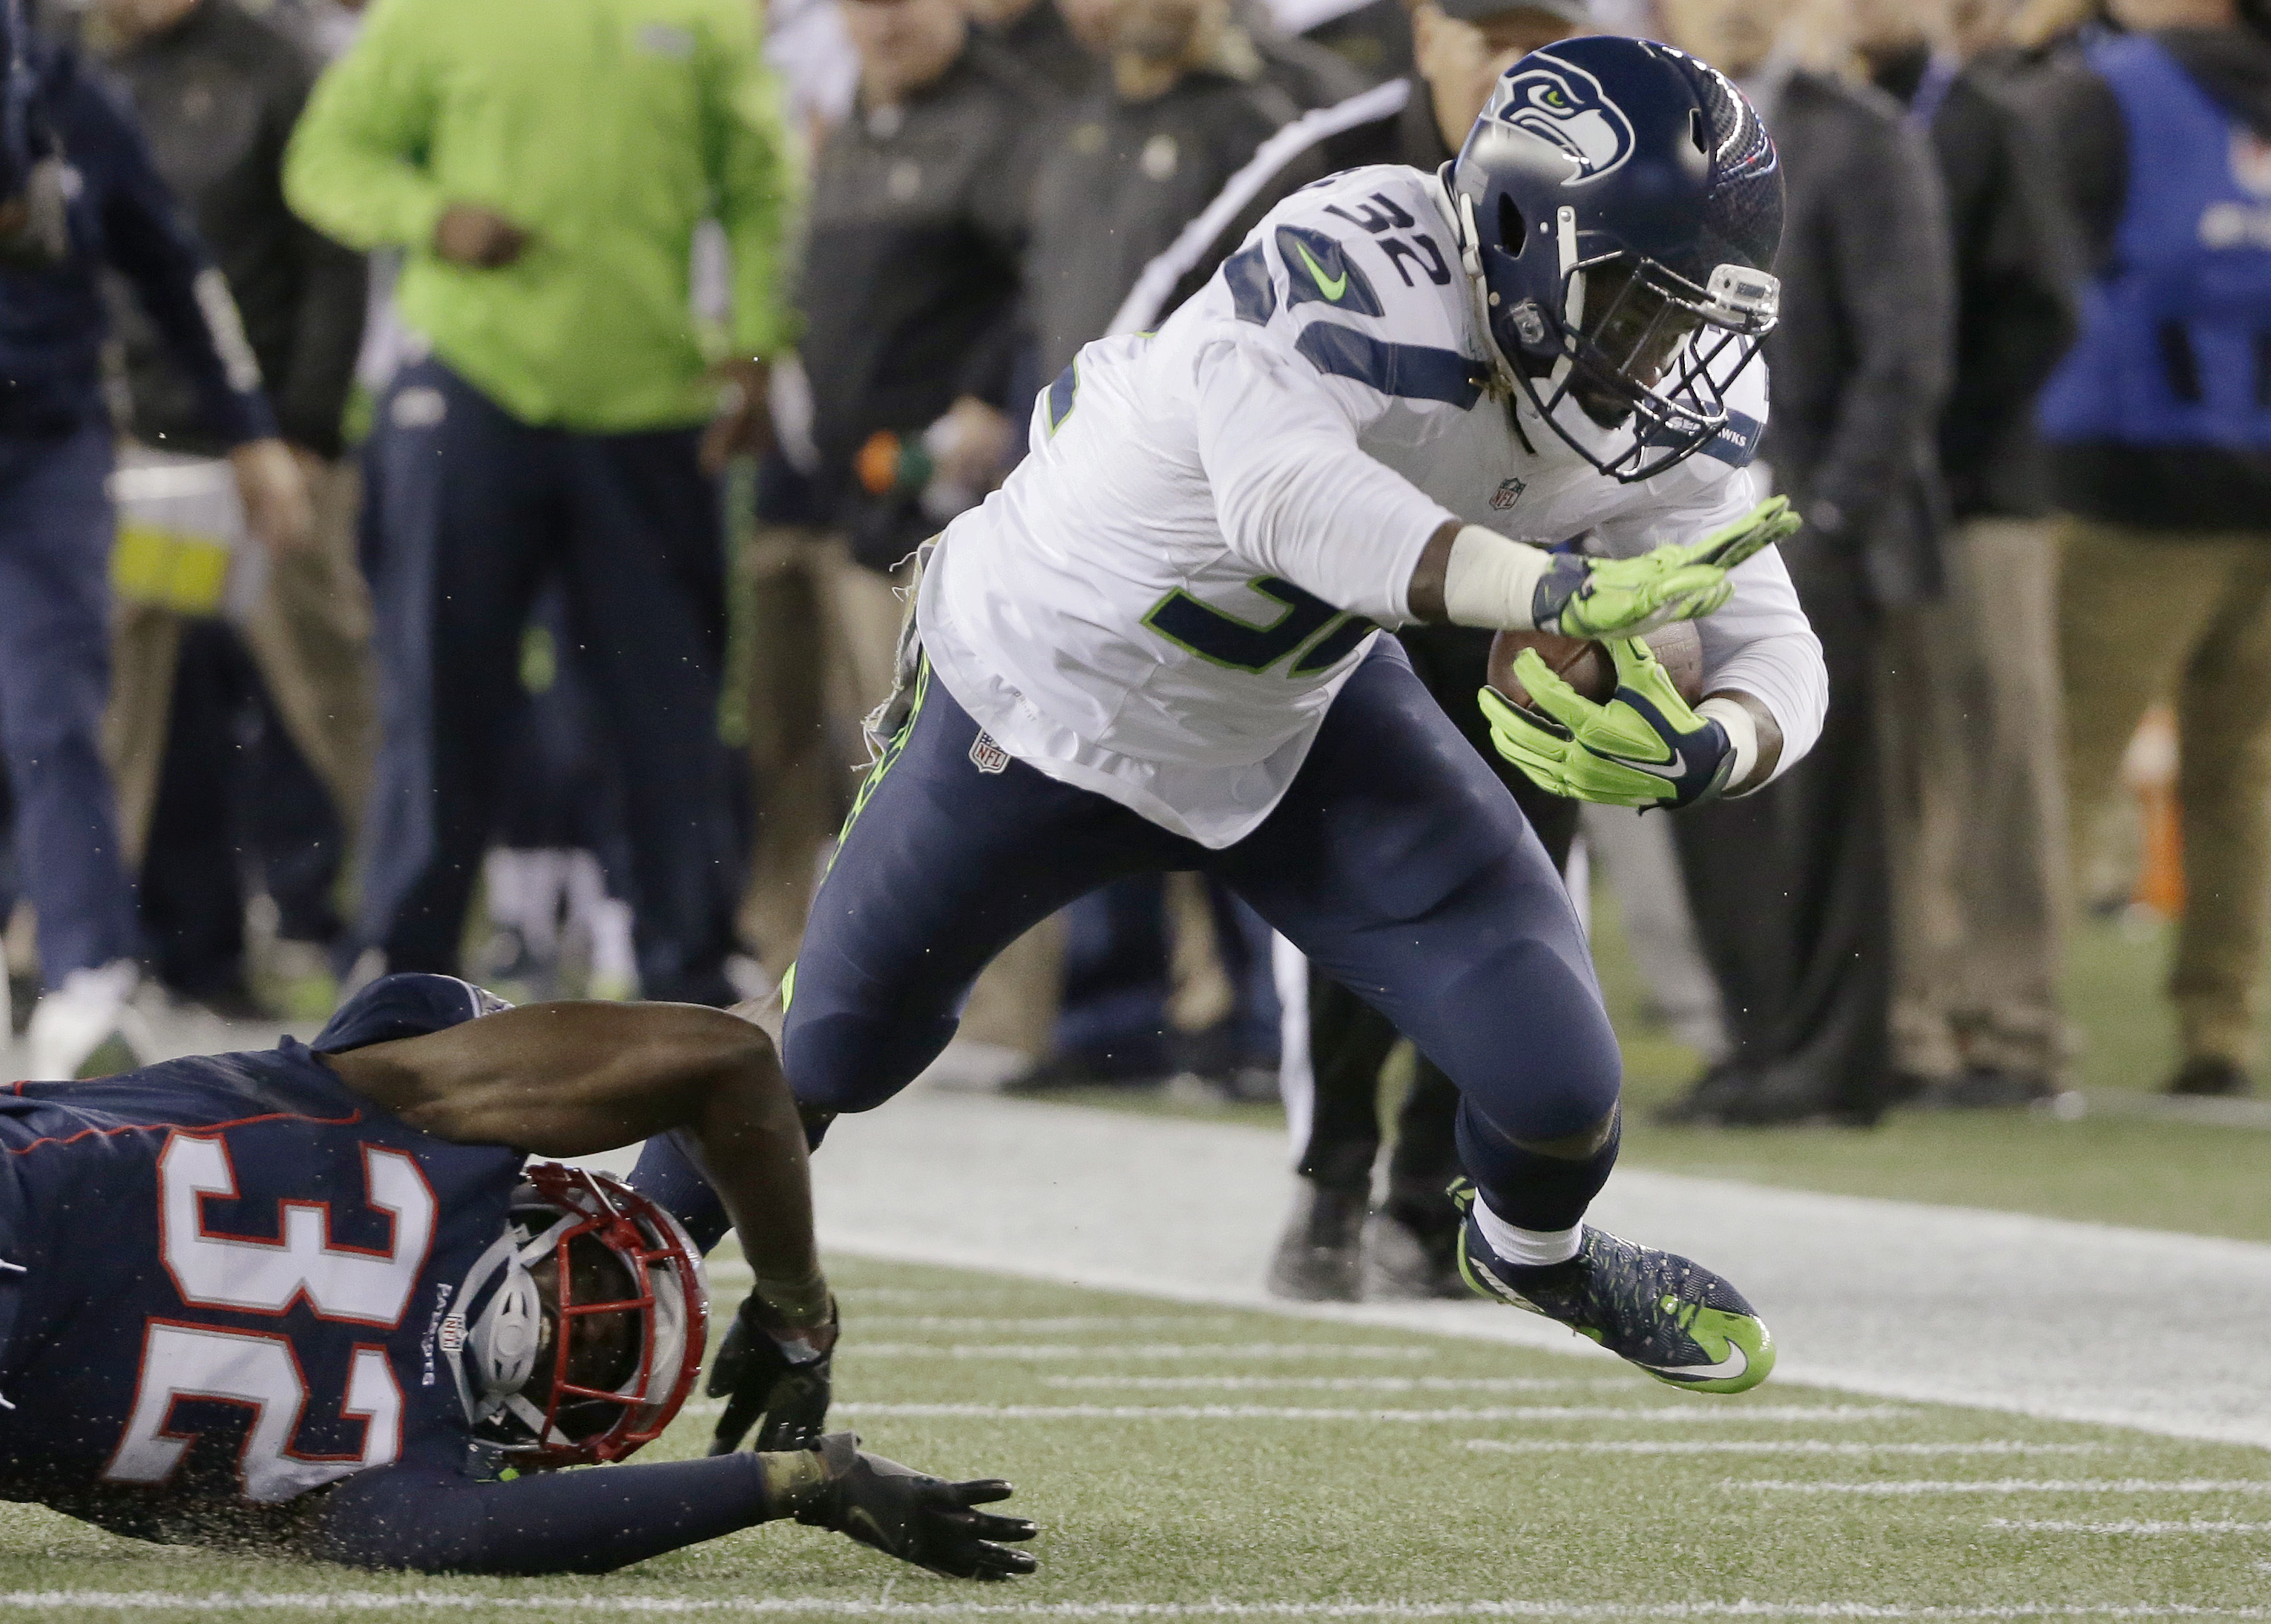 FILE - In this Nov. 13, 2016, file photo, Seattle Seahawks running back Christine Michael, right, eludes New England Patriots defensive back Devin McCourty, left, during the first half of an NFL football game in Foxborough, Mass. In Clay Matthews and now